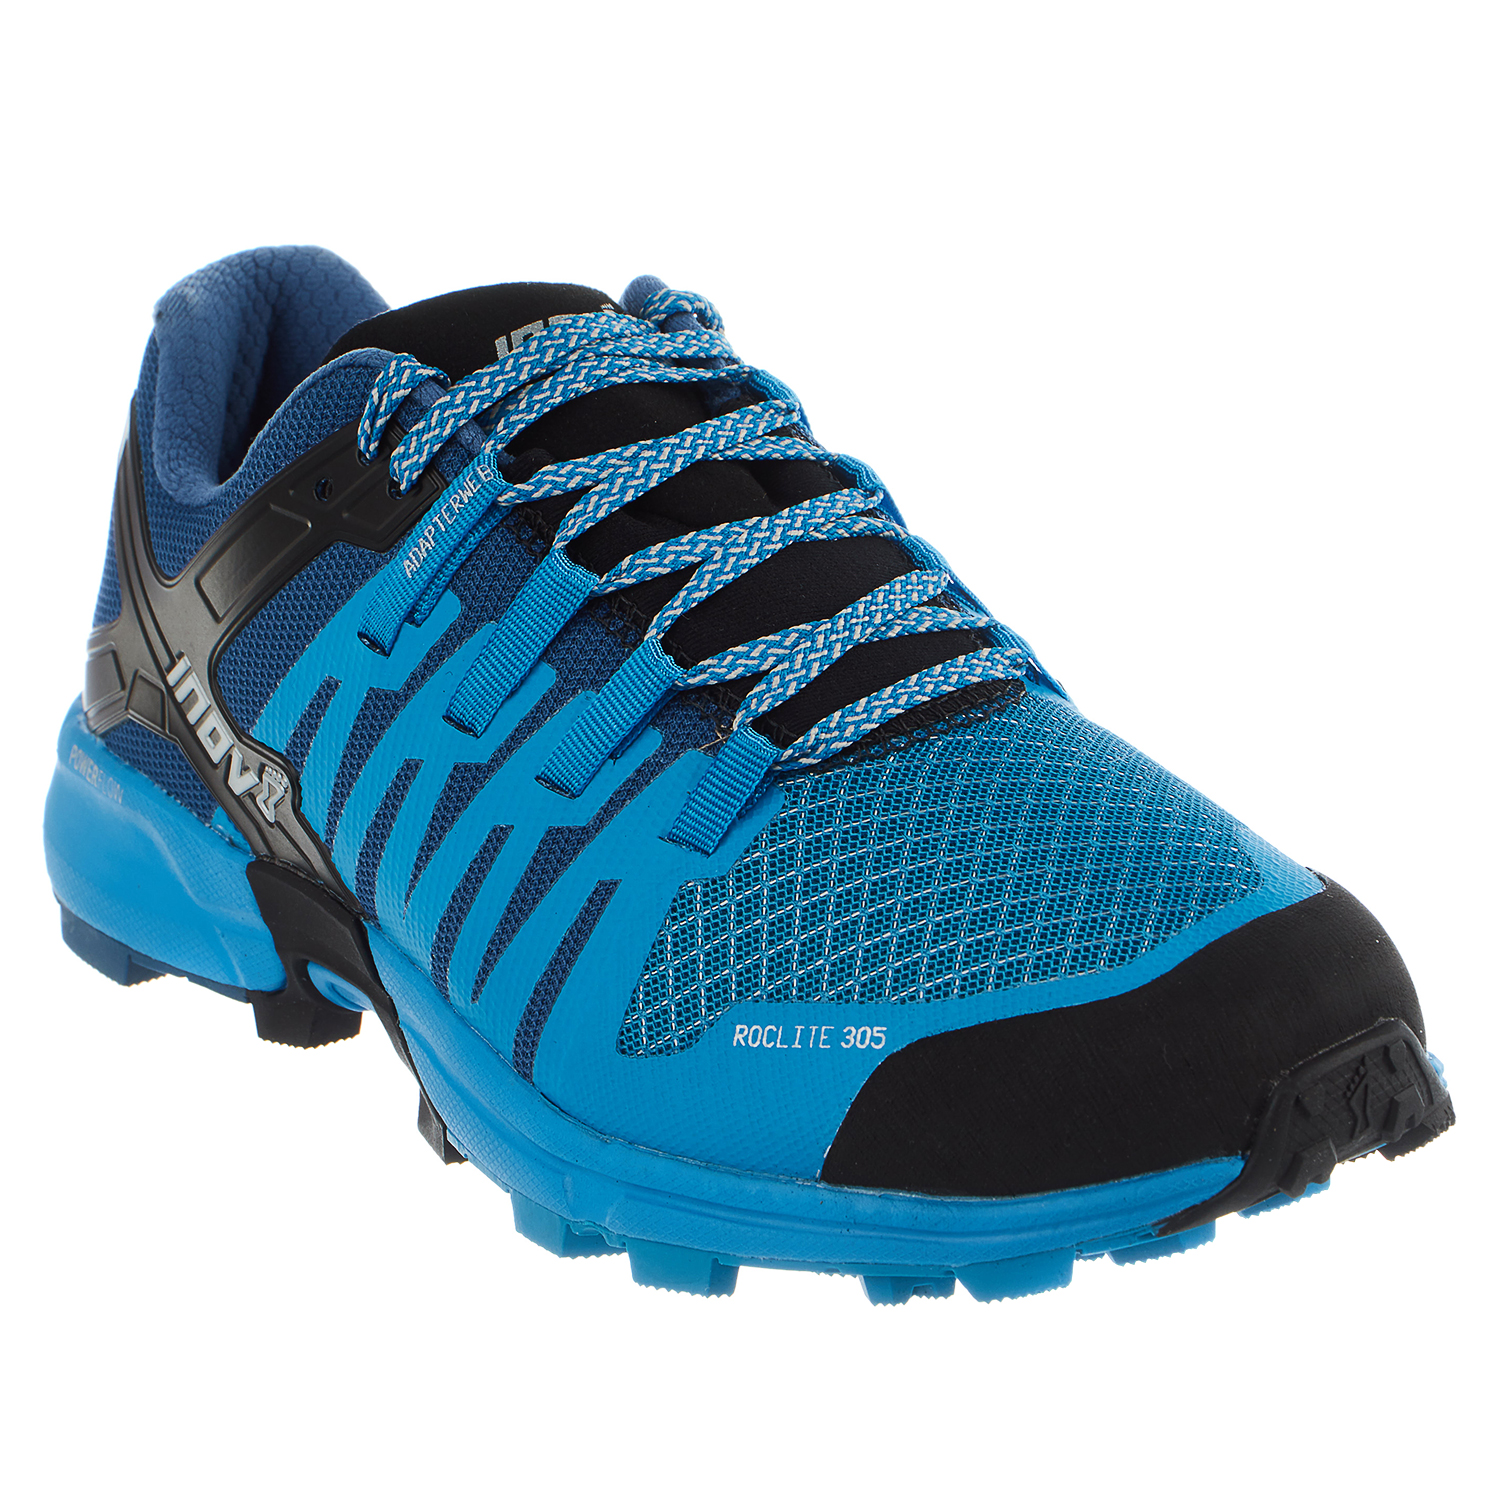 Inov-8 Roclite 305 Men's Trail Running Shoe